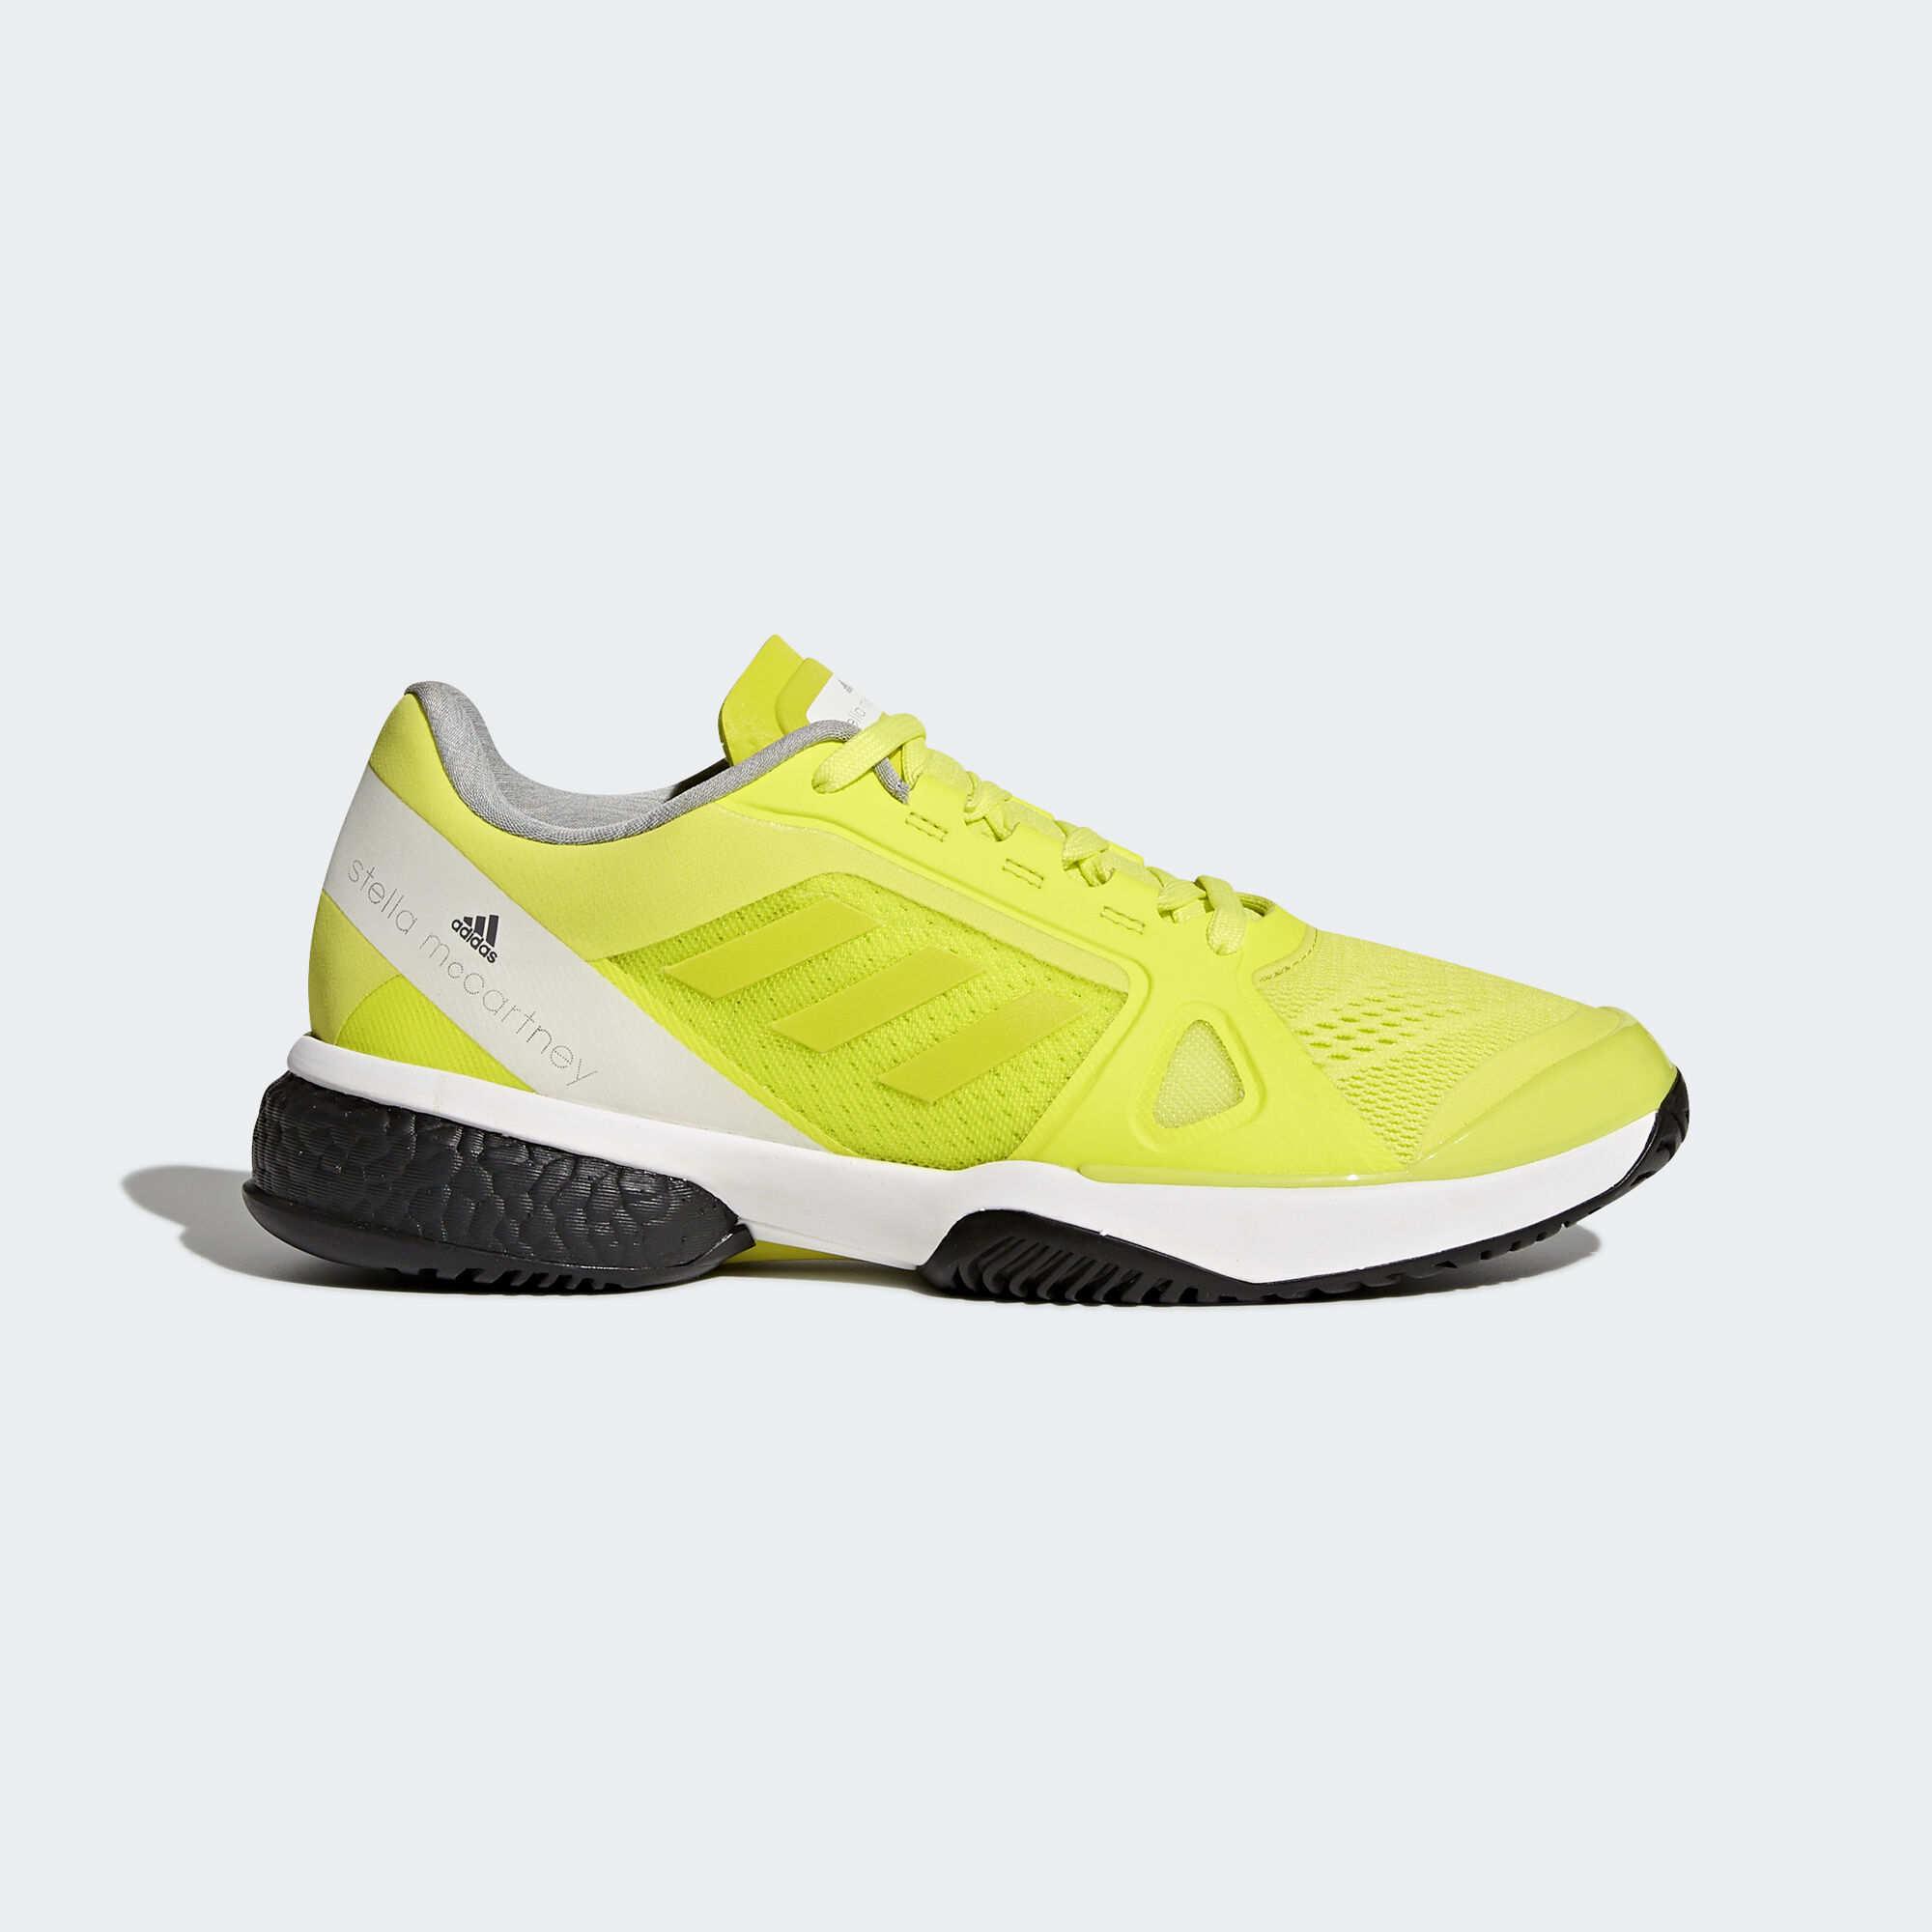 Adidas by Stella McCartney adidas Barricade Boost Zapatos amarillo